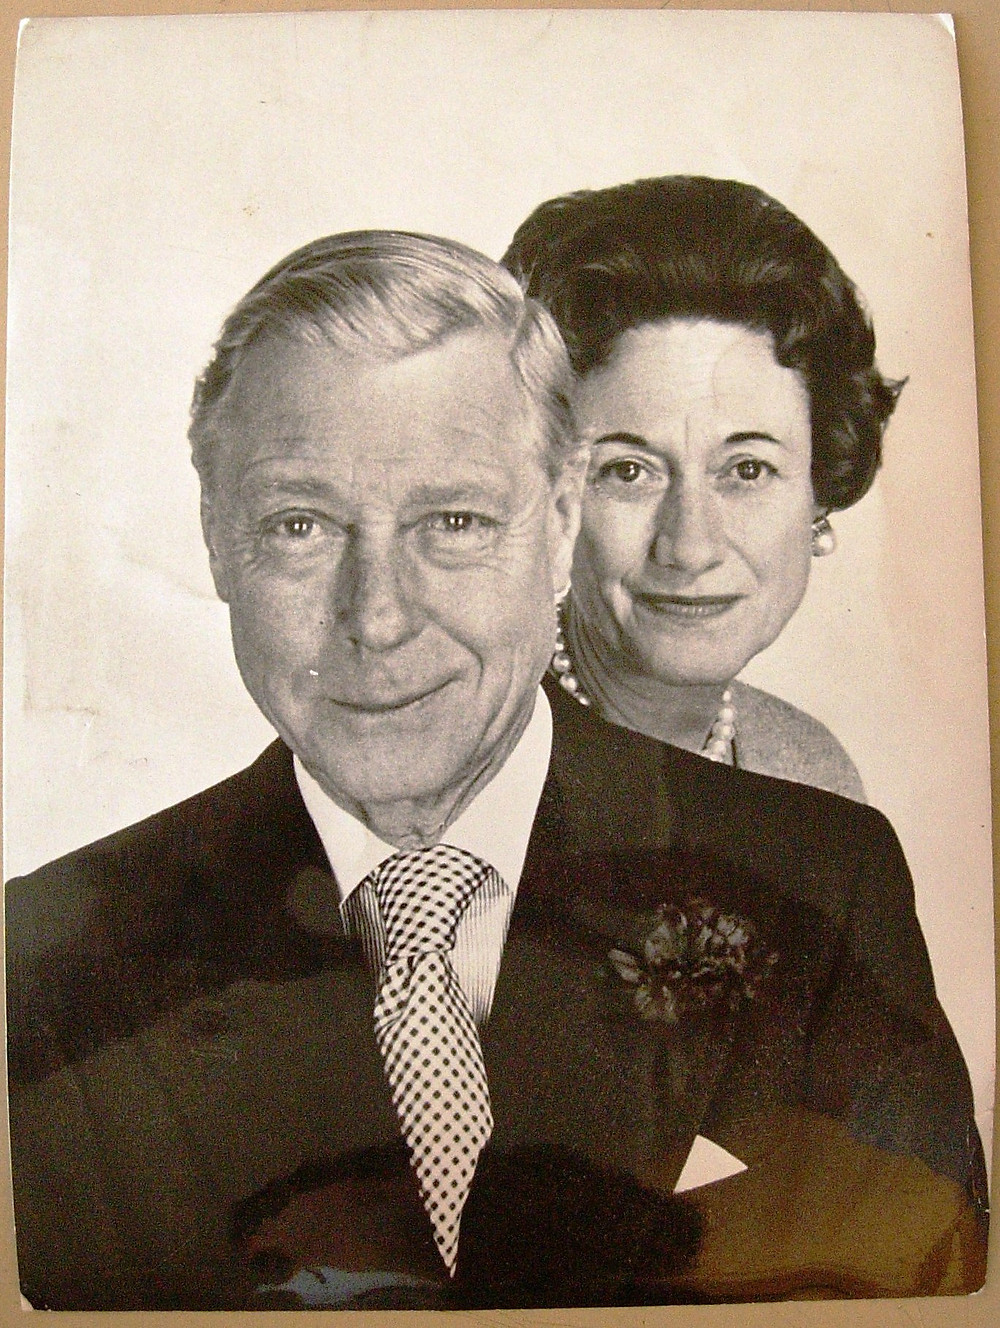 Duke & Duchess of Windsor, 1961 by Cecil Beaton. Royal Collection Trust/© Her Majesty Queen Elizabeth II 2020. The Duke of Windsor was the King of Great Britain in 1936 as Edward VIII